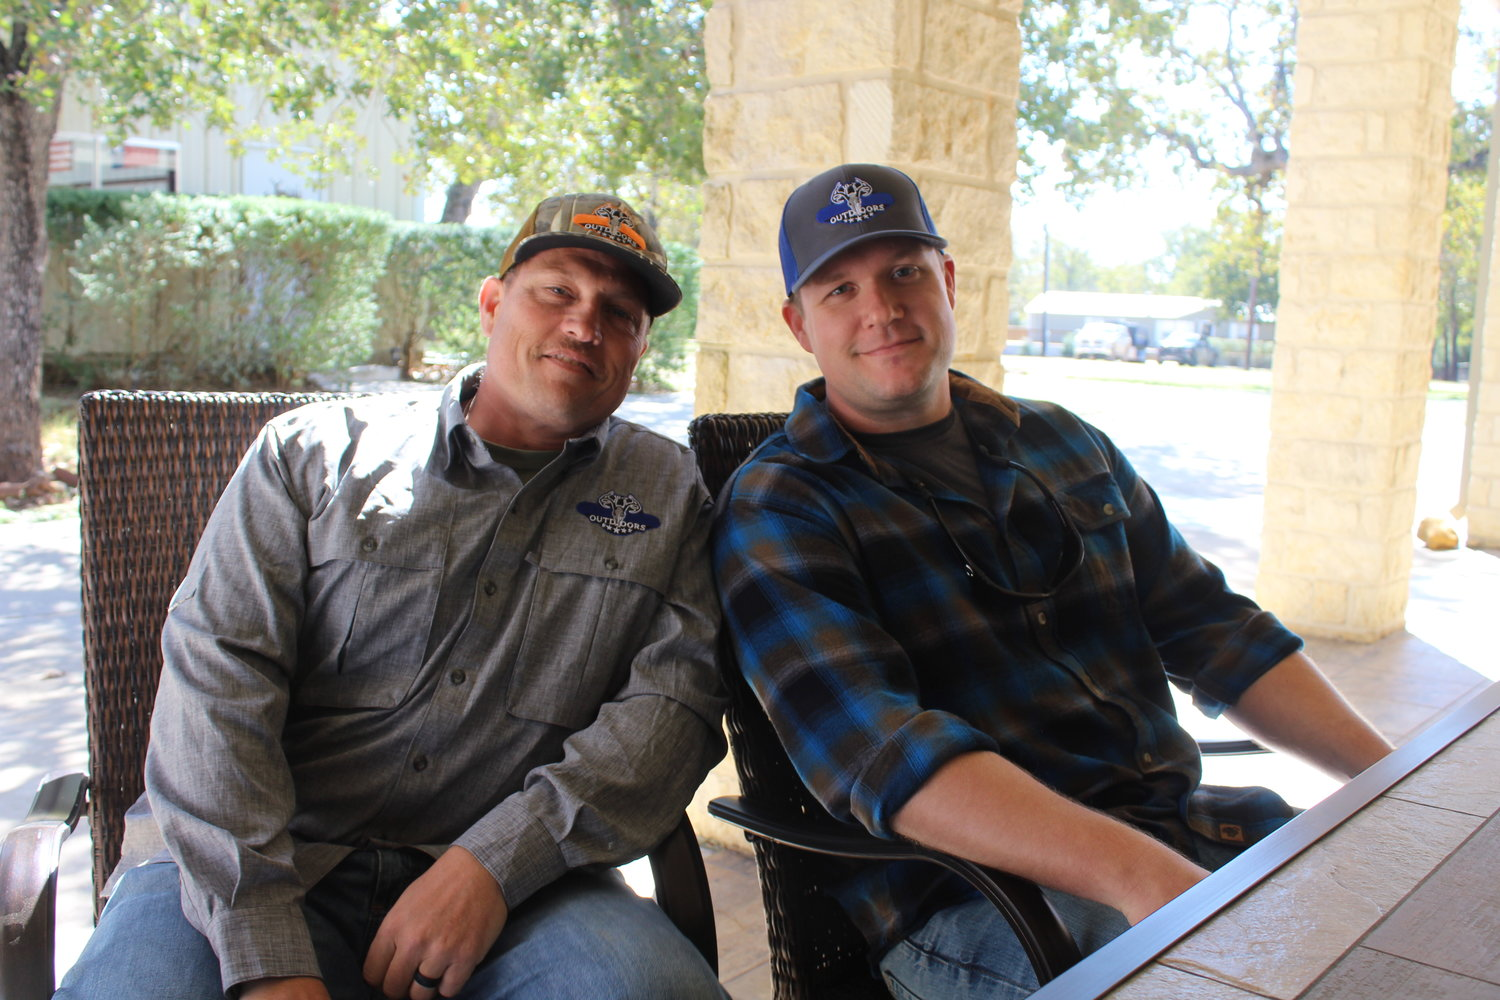 10-7 Outdoors founders Kris Caldwell and Justin Leathers believed they could make a difference helping children of men and women who have fallen in the line of duty by mentoring the officer's child or children through hunting and fishing trips.